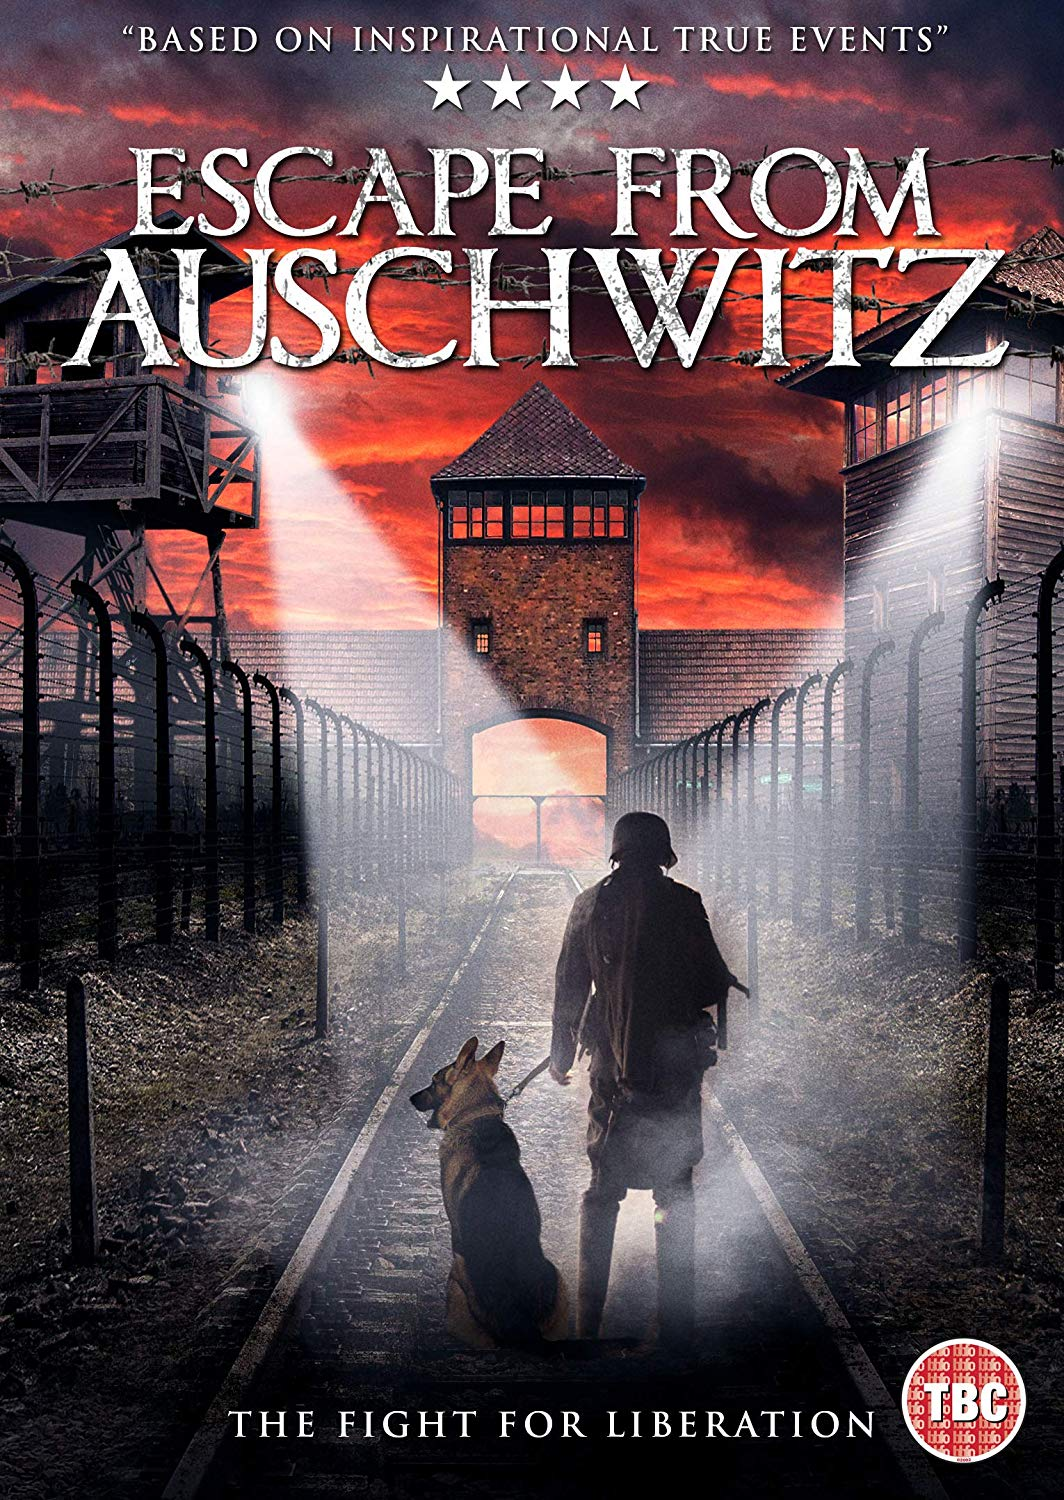 Escape from Auschwitz (The Escape from Auschwitz) (2020)